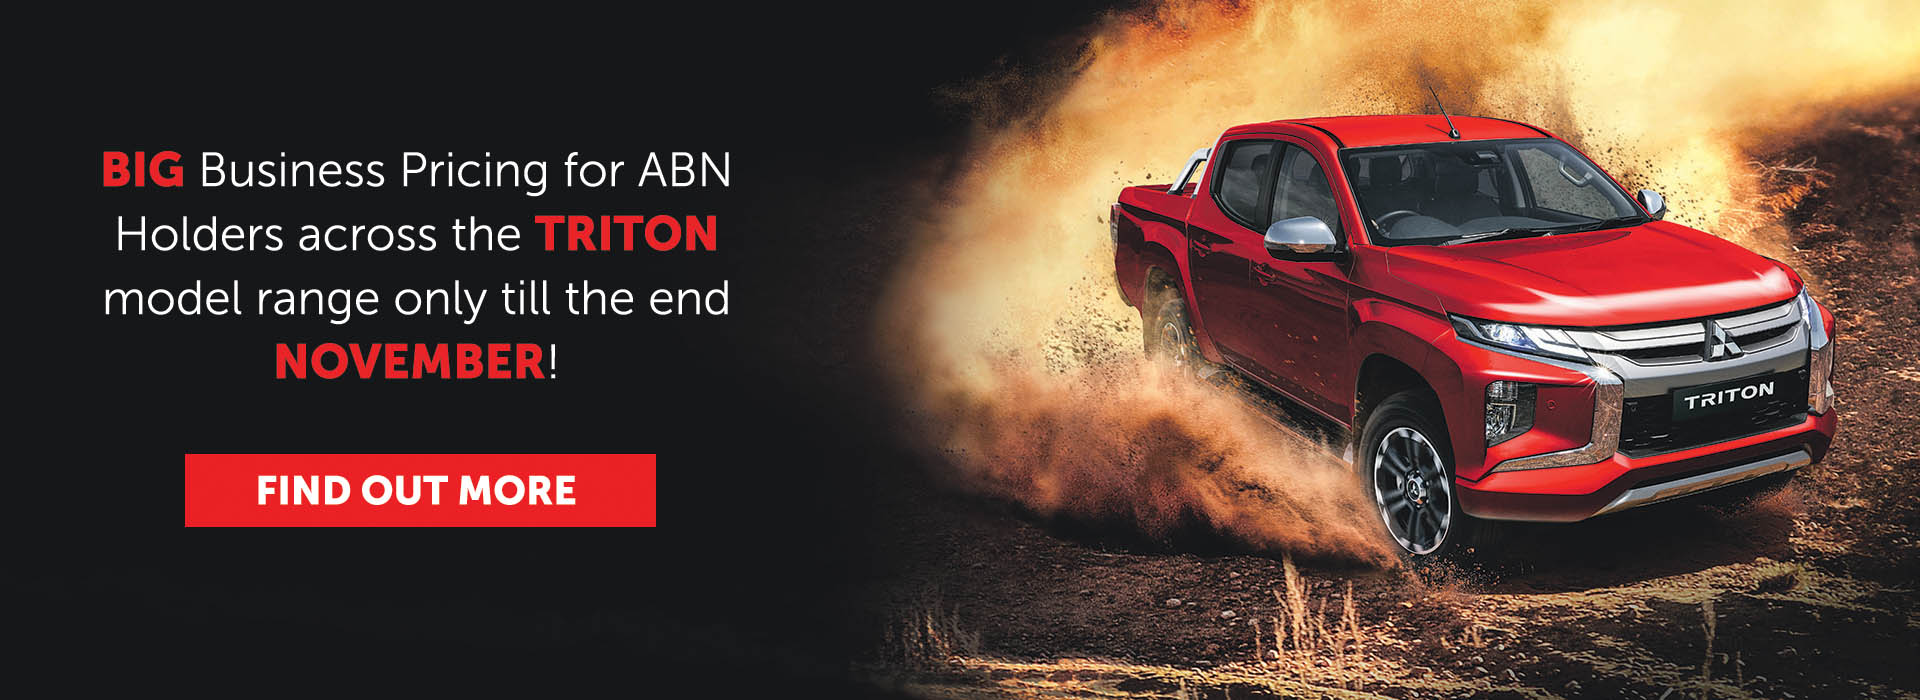 ABN-Offers